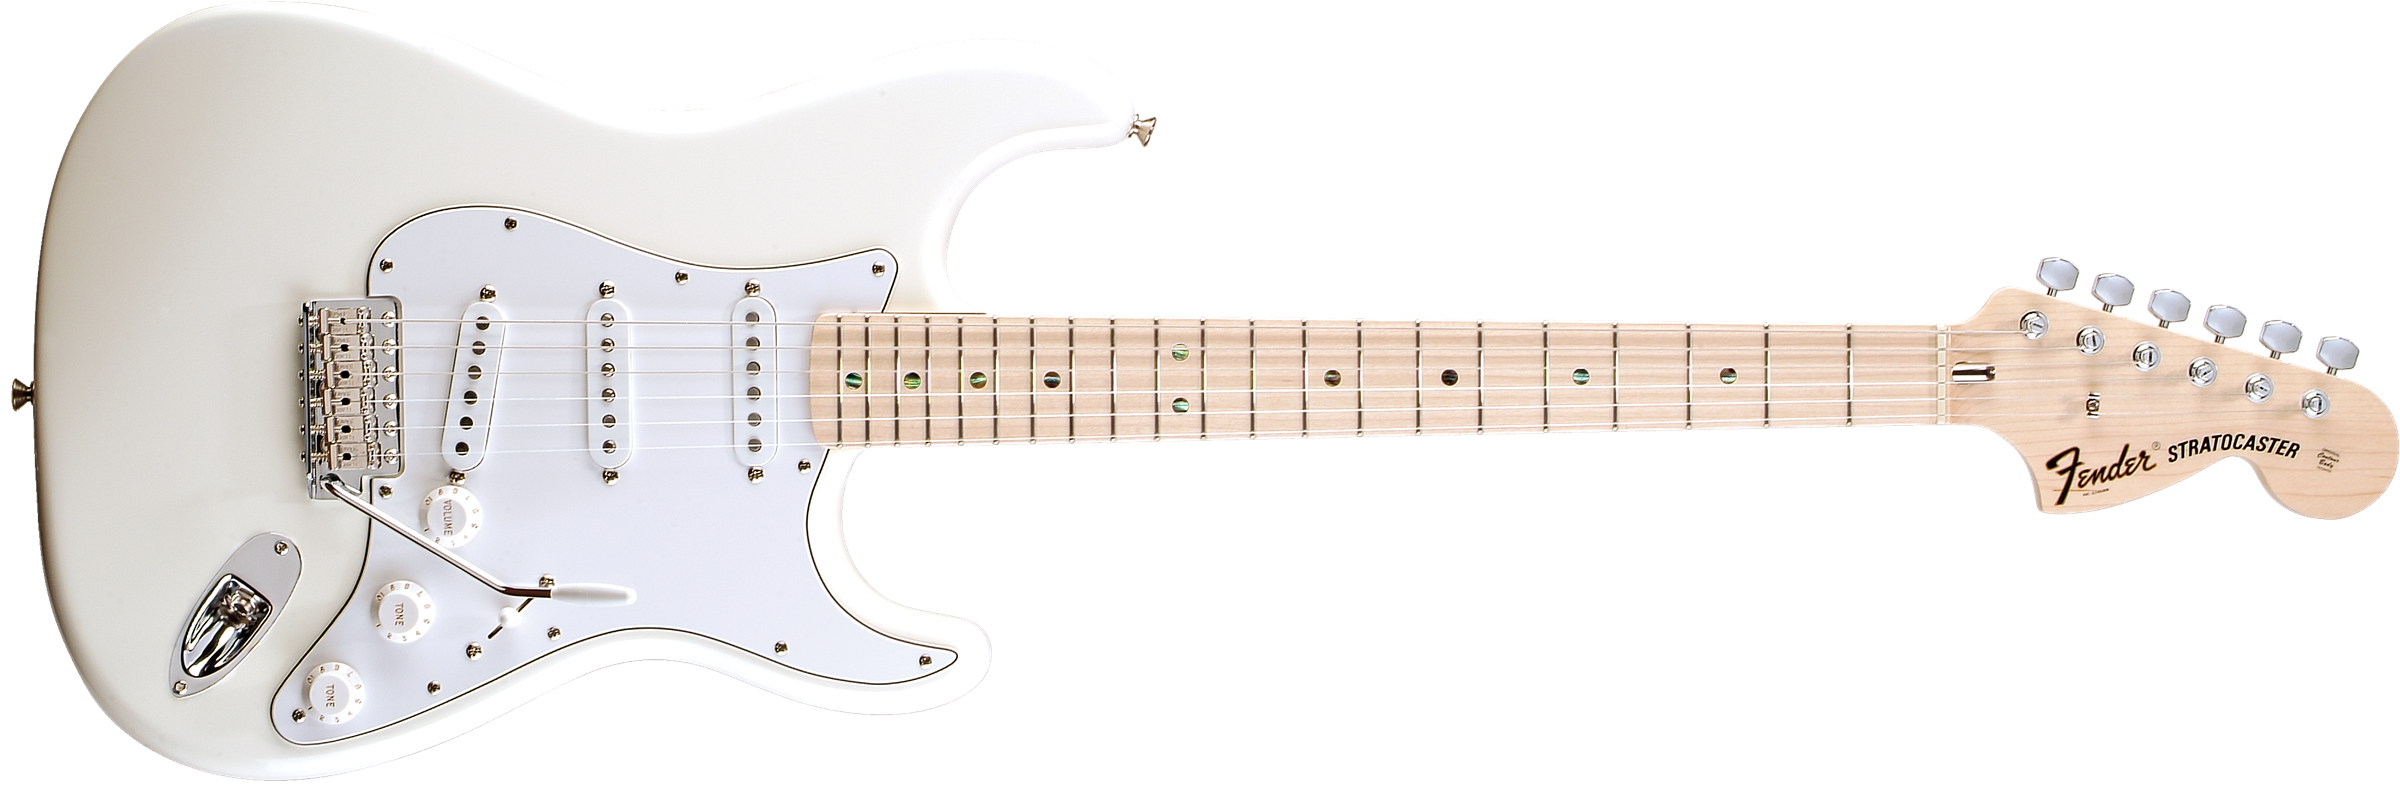 stratocaster pickup wiring schematic images tex mex wiring diagram fender wiring diagram and schematic